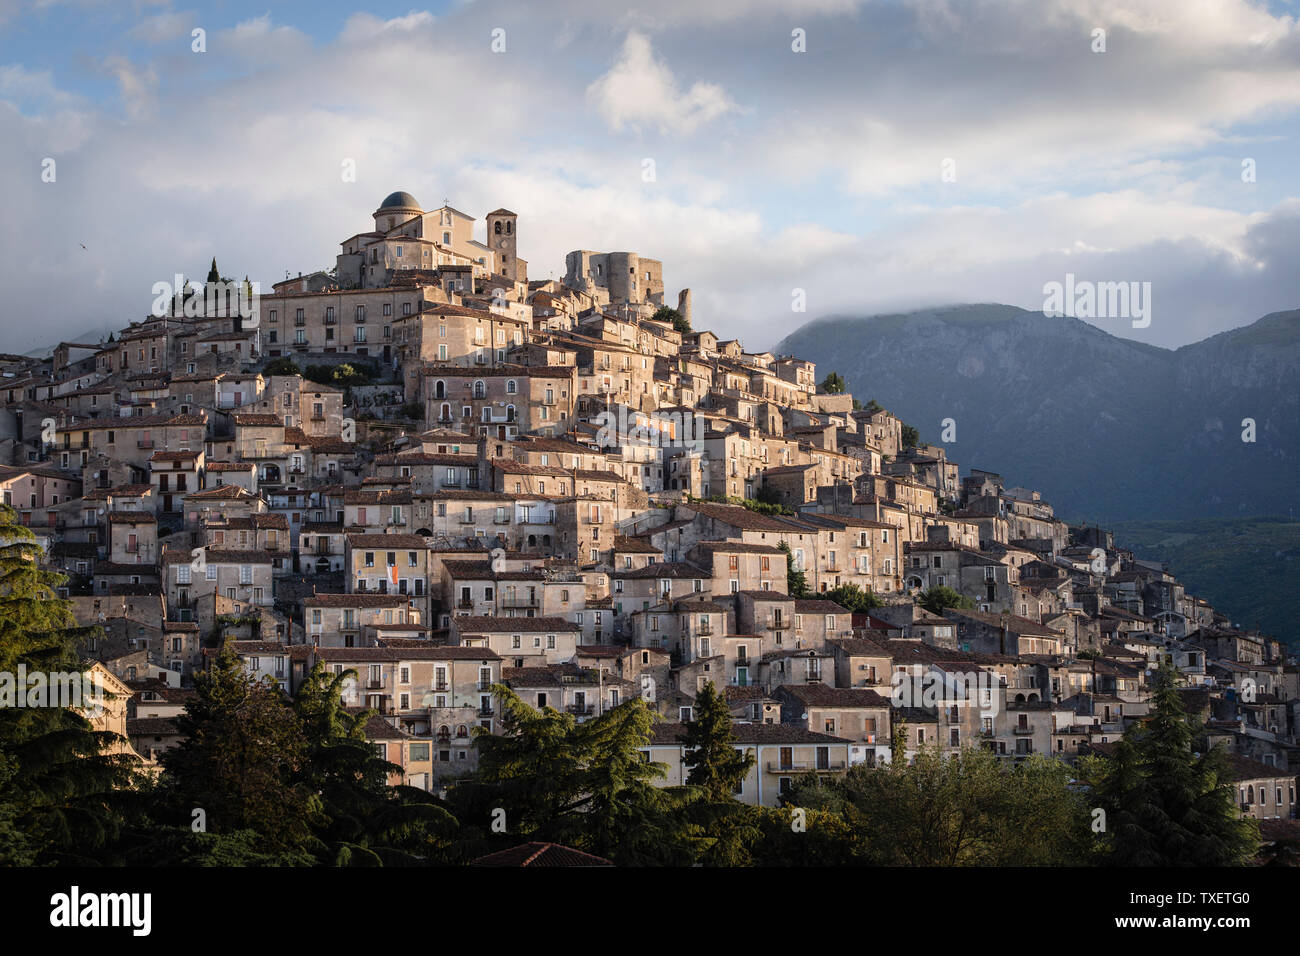 The ancient town of Morano Calabro at sunrise, Calabria, Italy - Stock Image